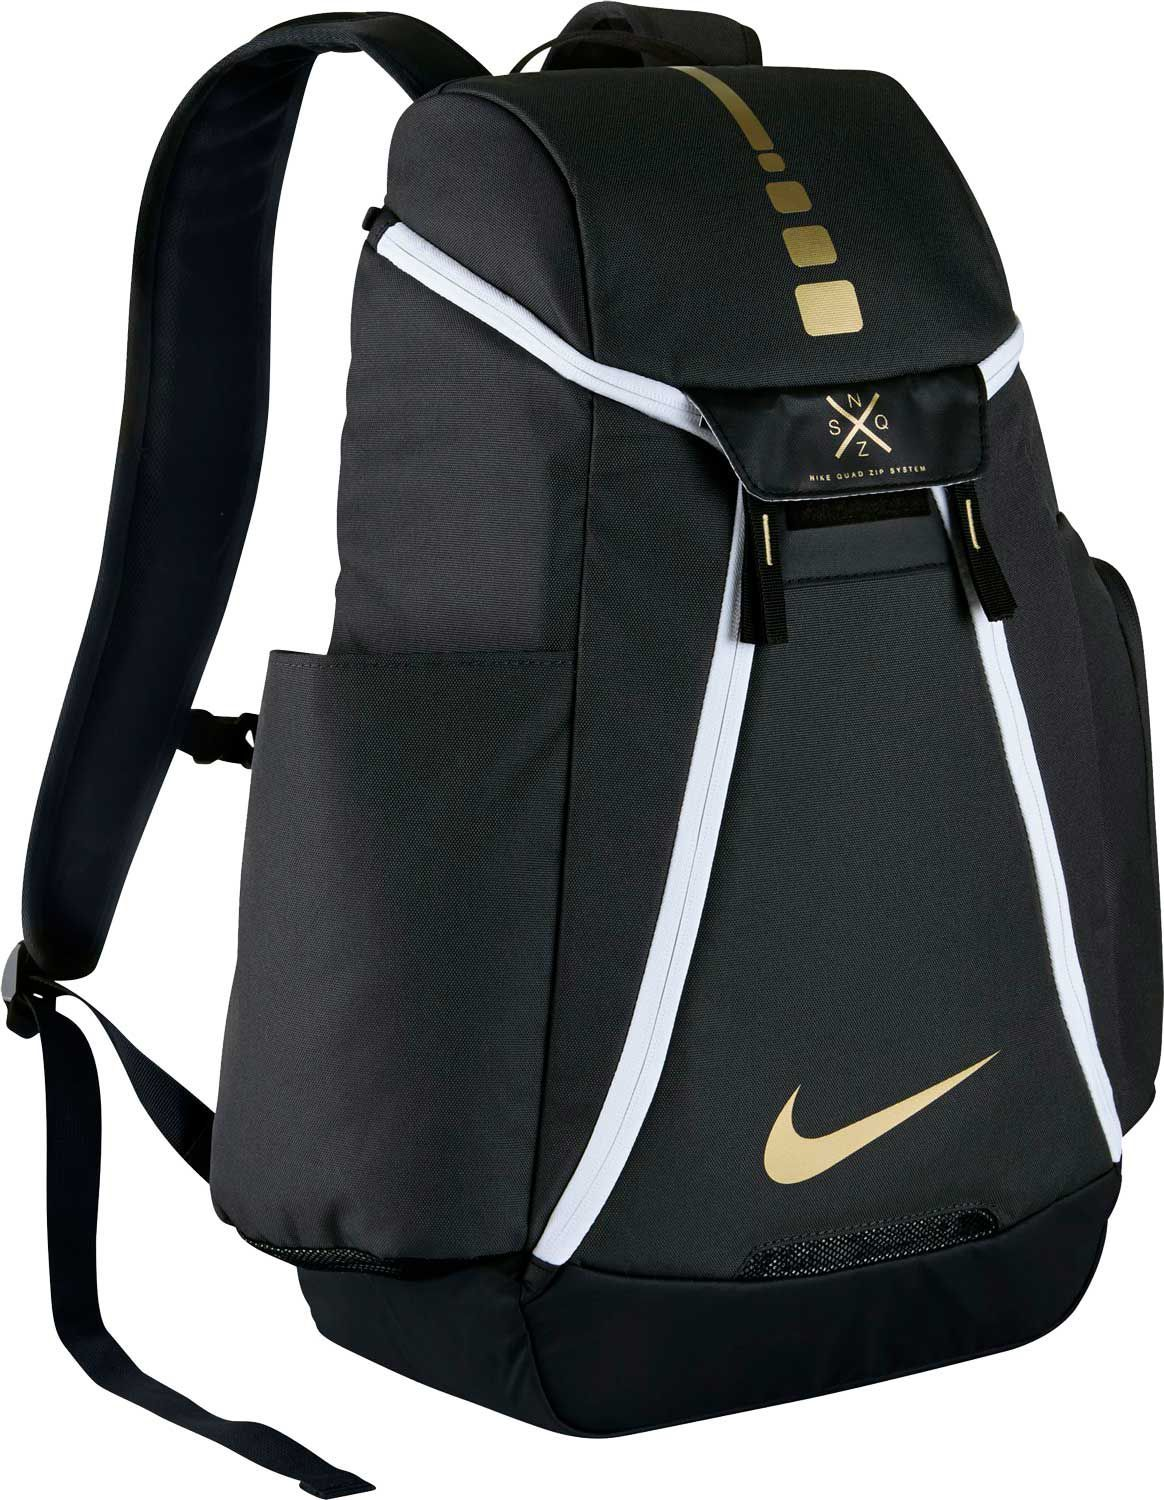 d3219265499 Nike Hoops Elite Max Air Team 2.0 Backpack, Grey/Black/Gold ...